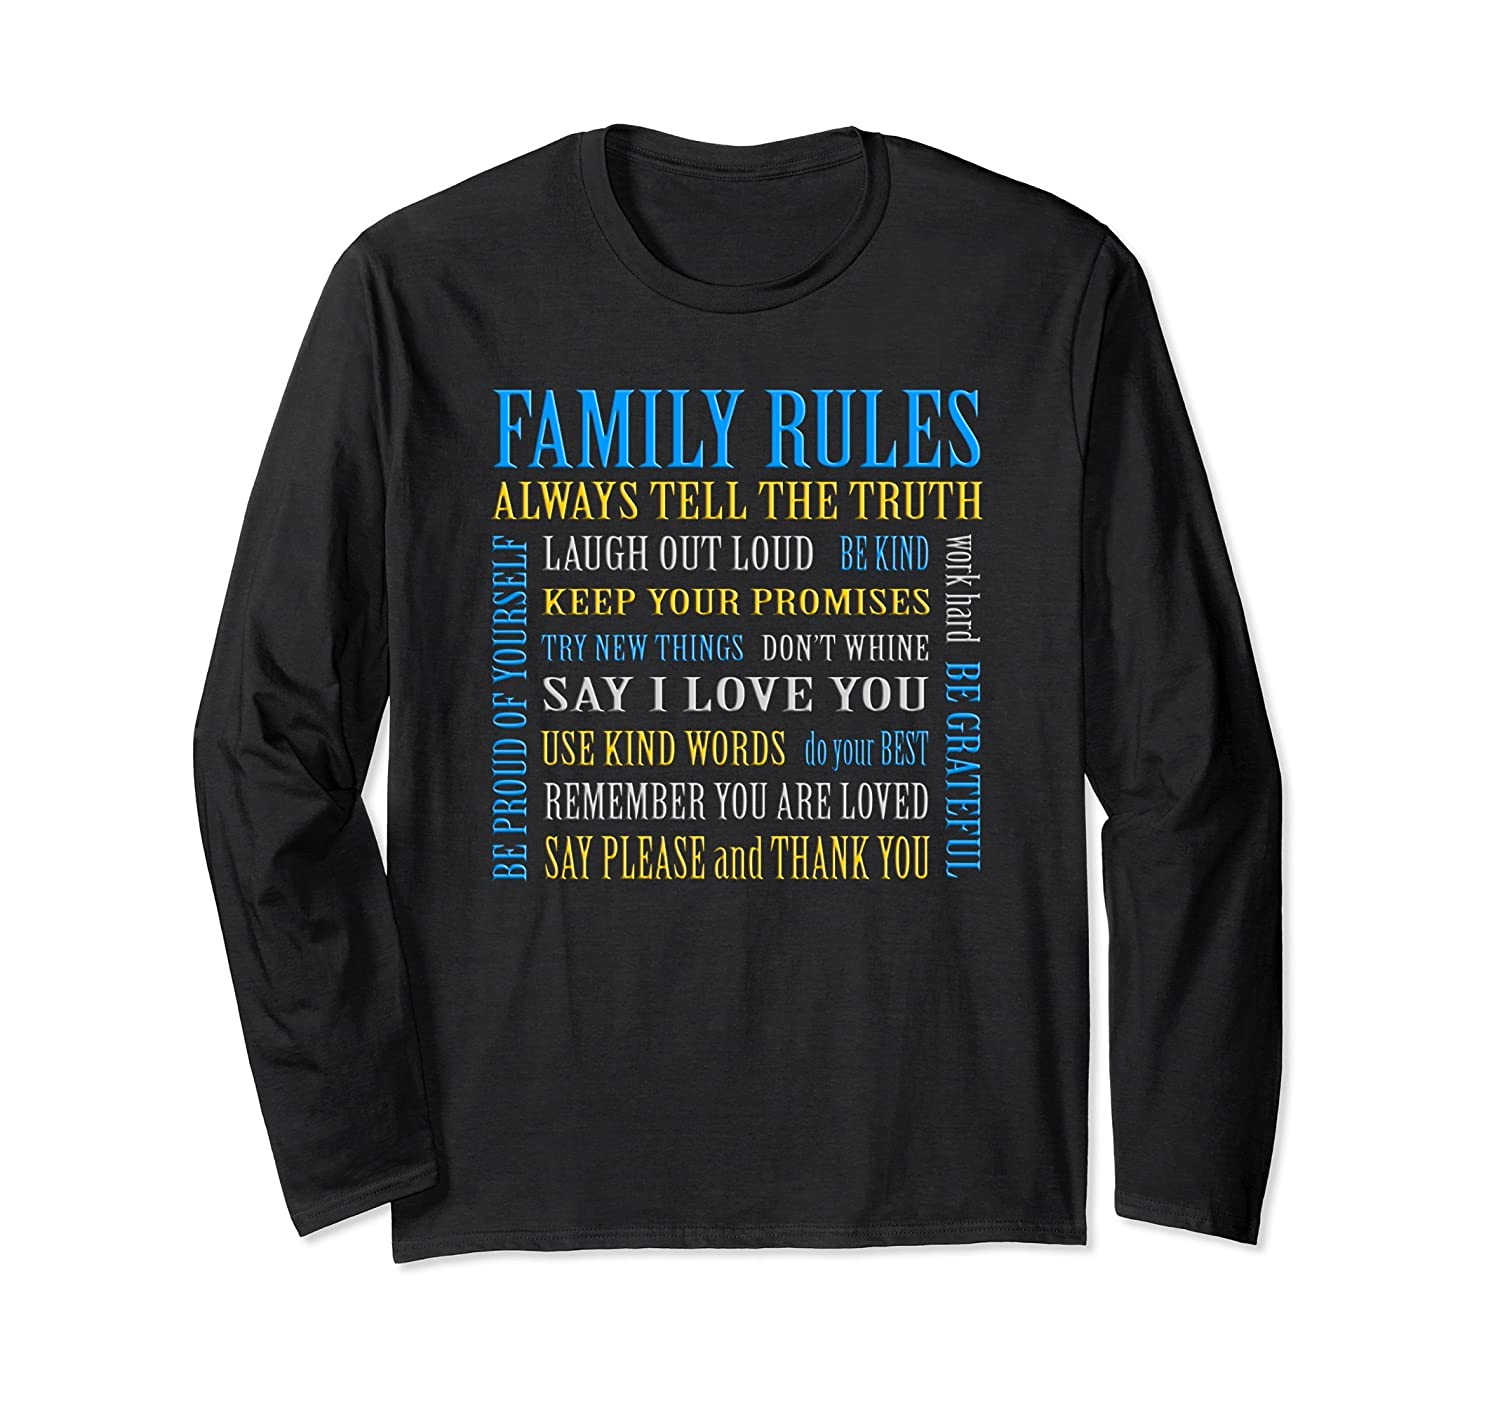 Family Rules To Live By Long Sleeve T Shirt Design Sayings Alottee